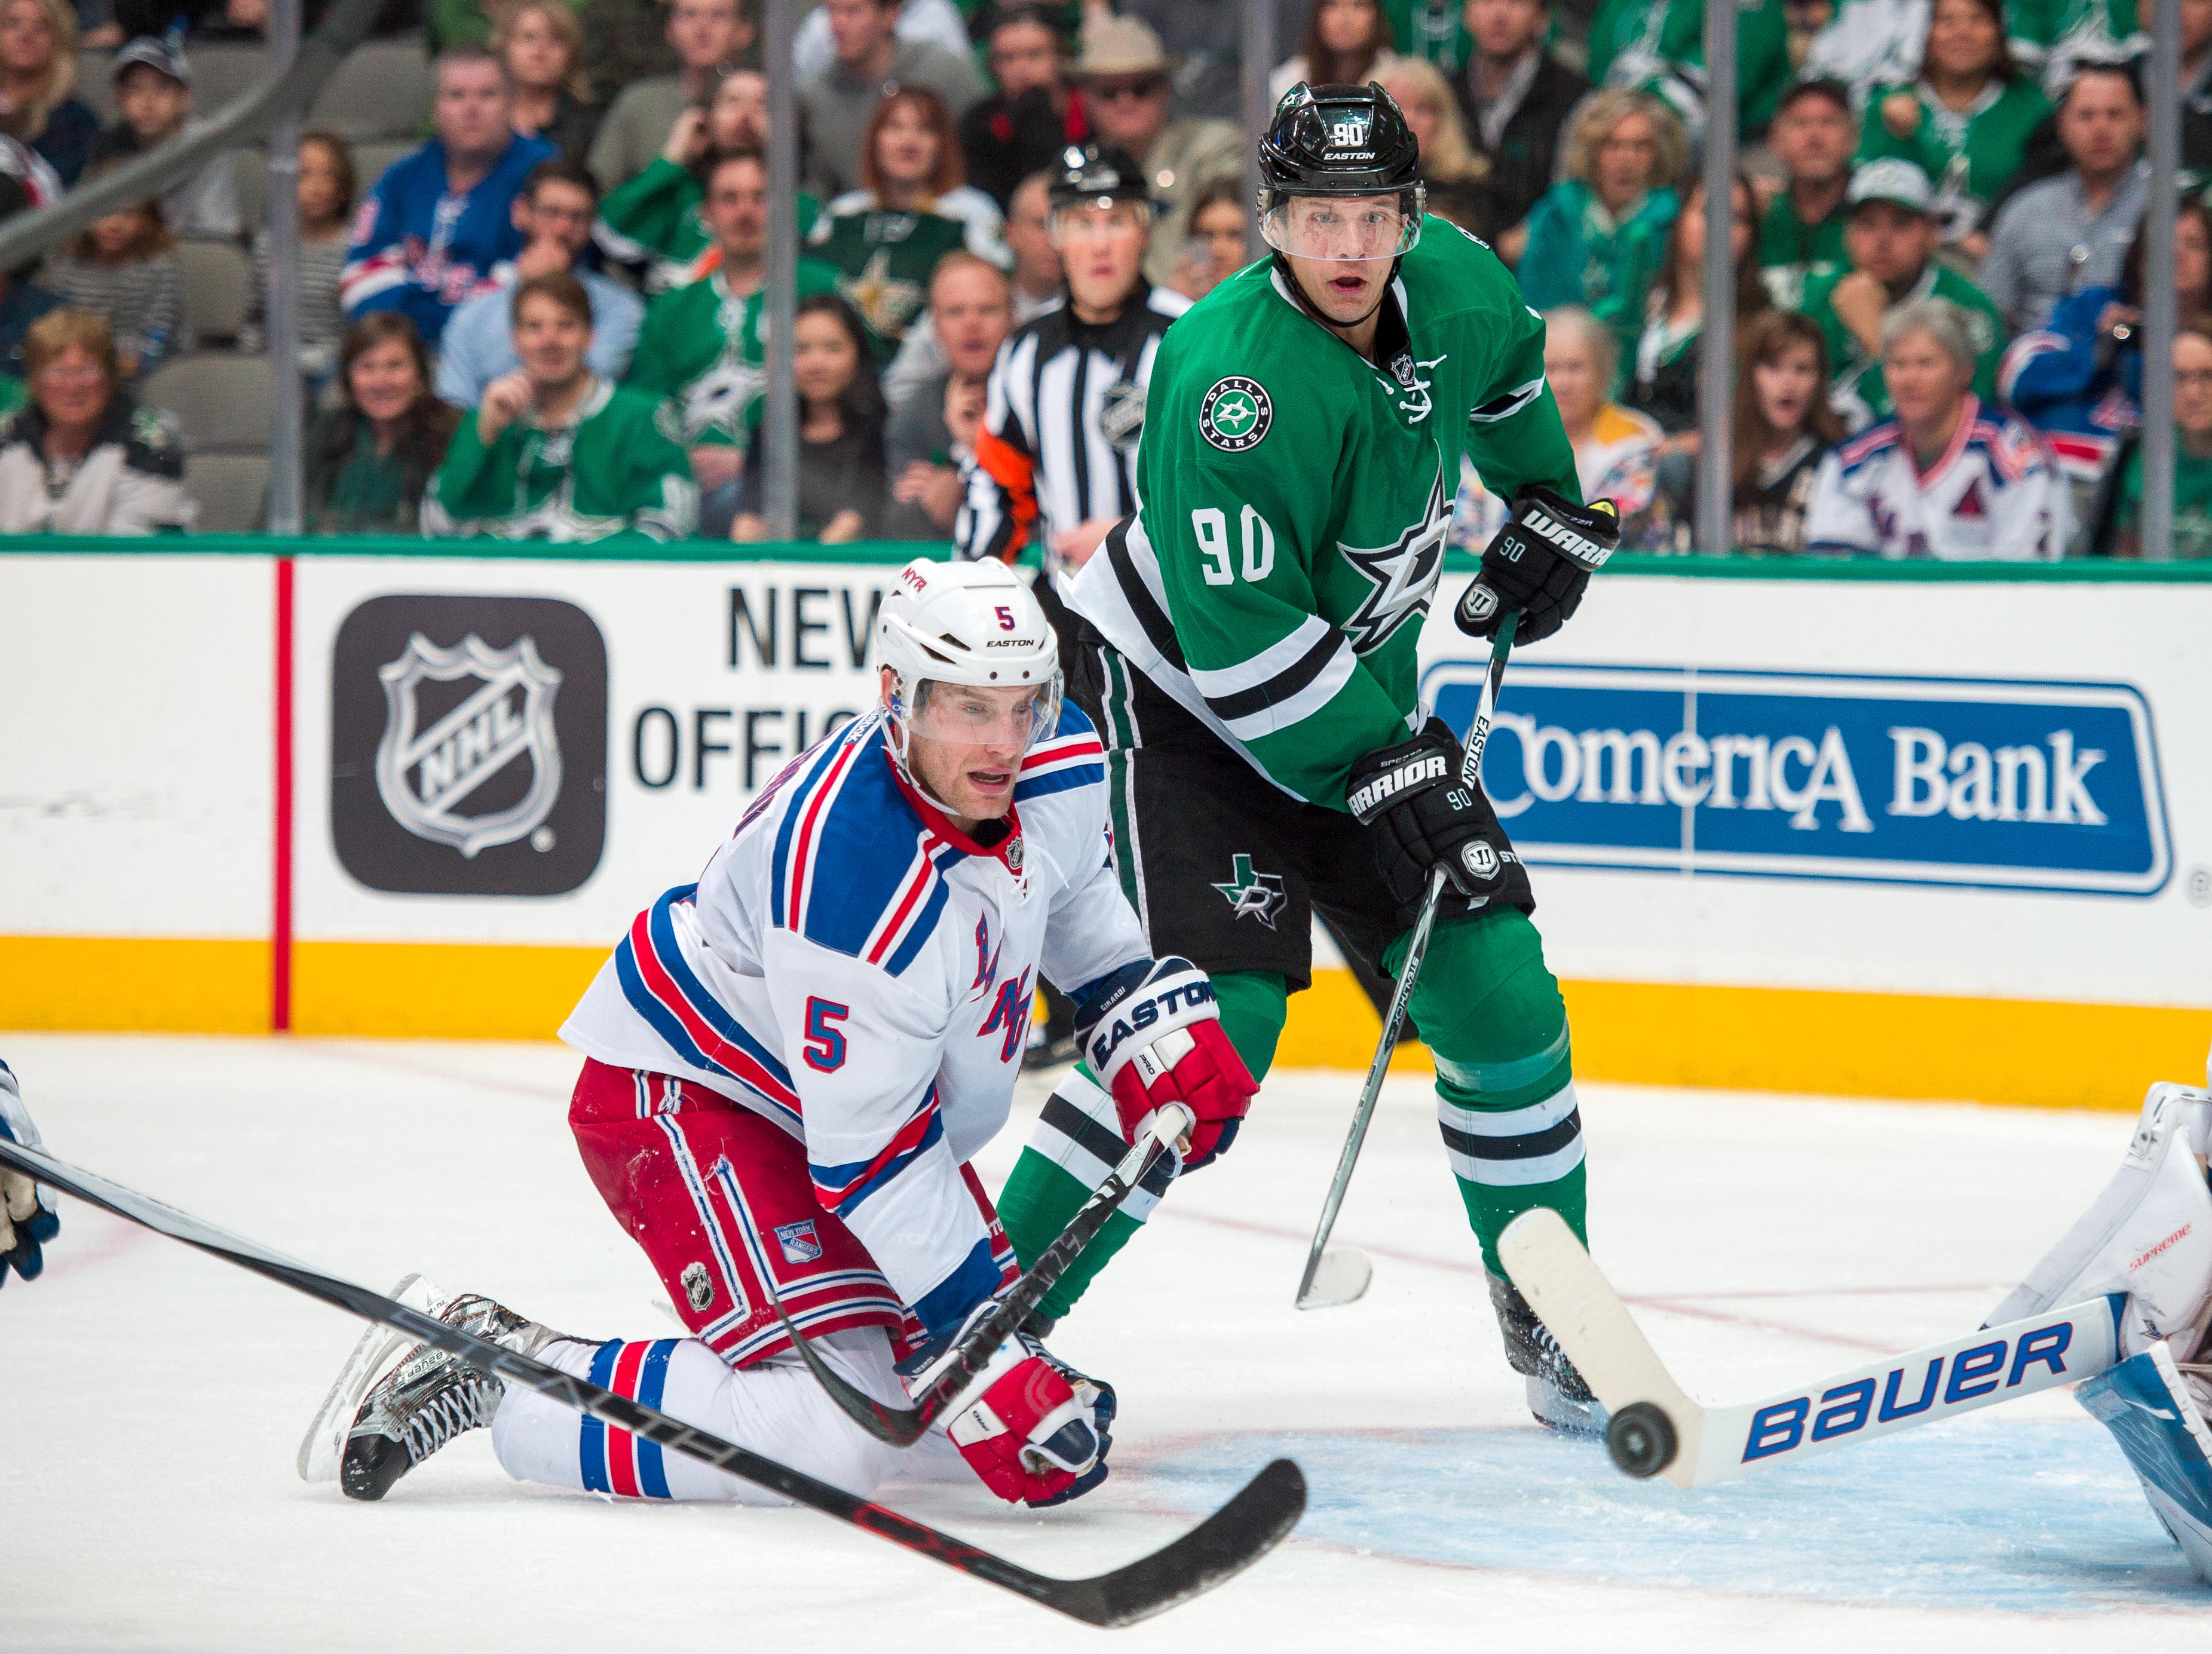 NHL: New York Rangers at Dallas Stars